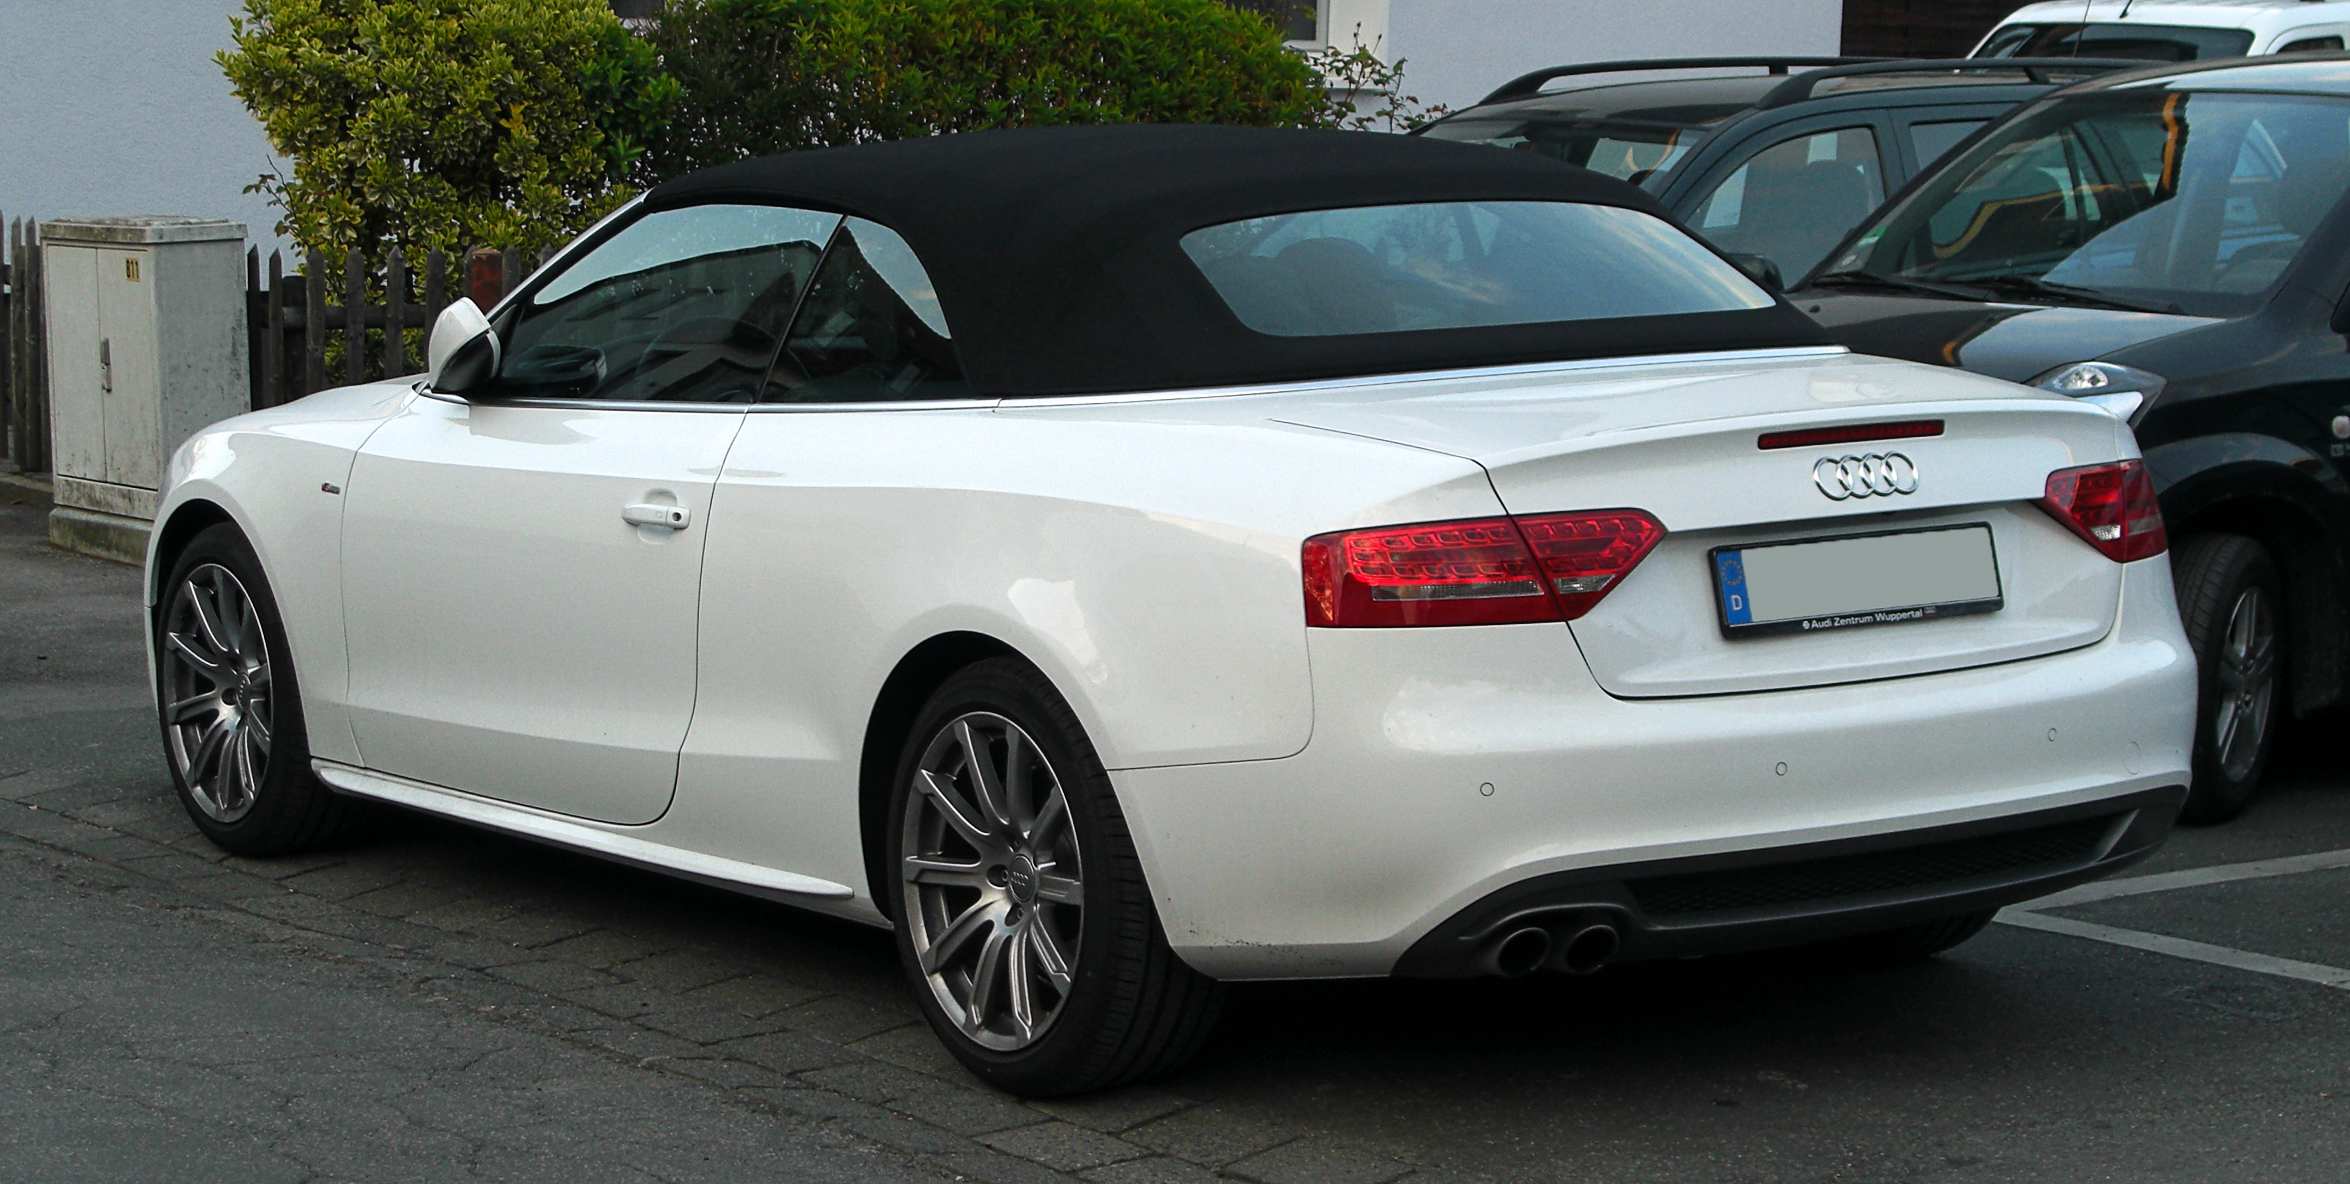 2011 audi a5 cabriolet 1 8 tfsi related infomation specifications weili automotive network. Black Bedroom Furniture Sets. Home Design Ideas